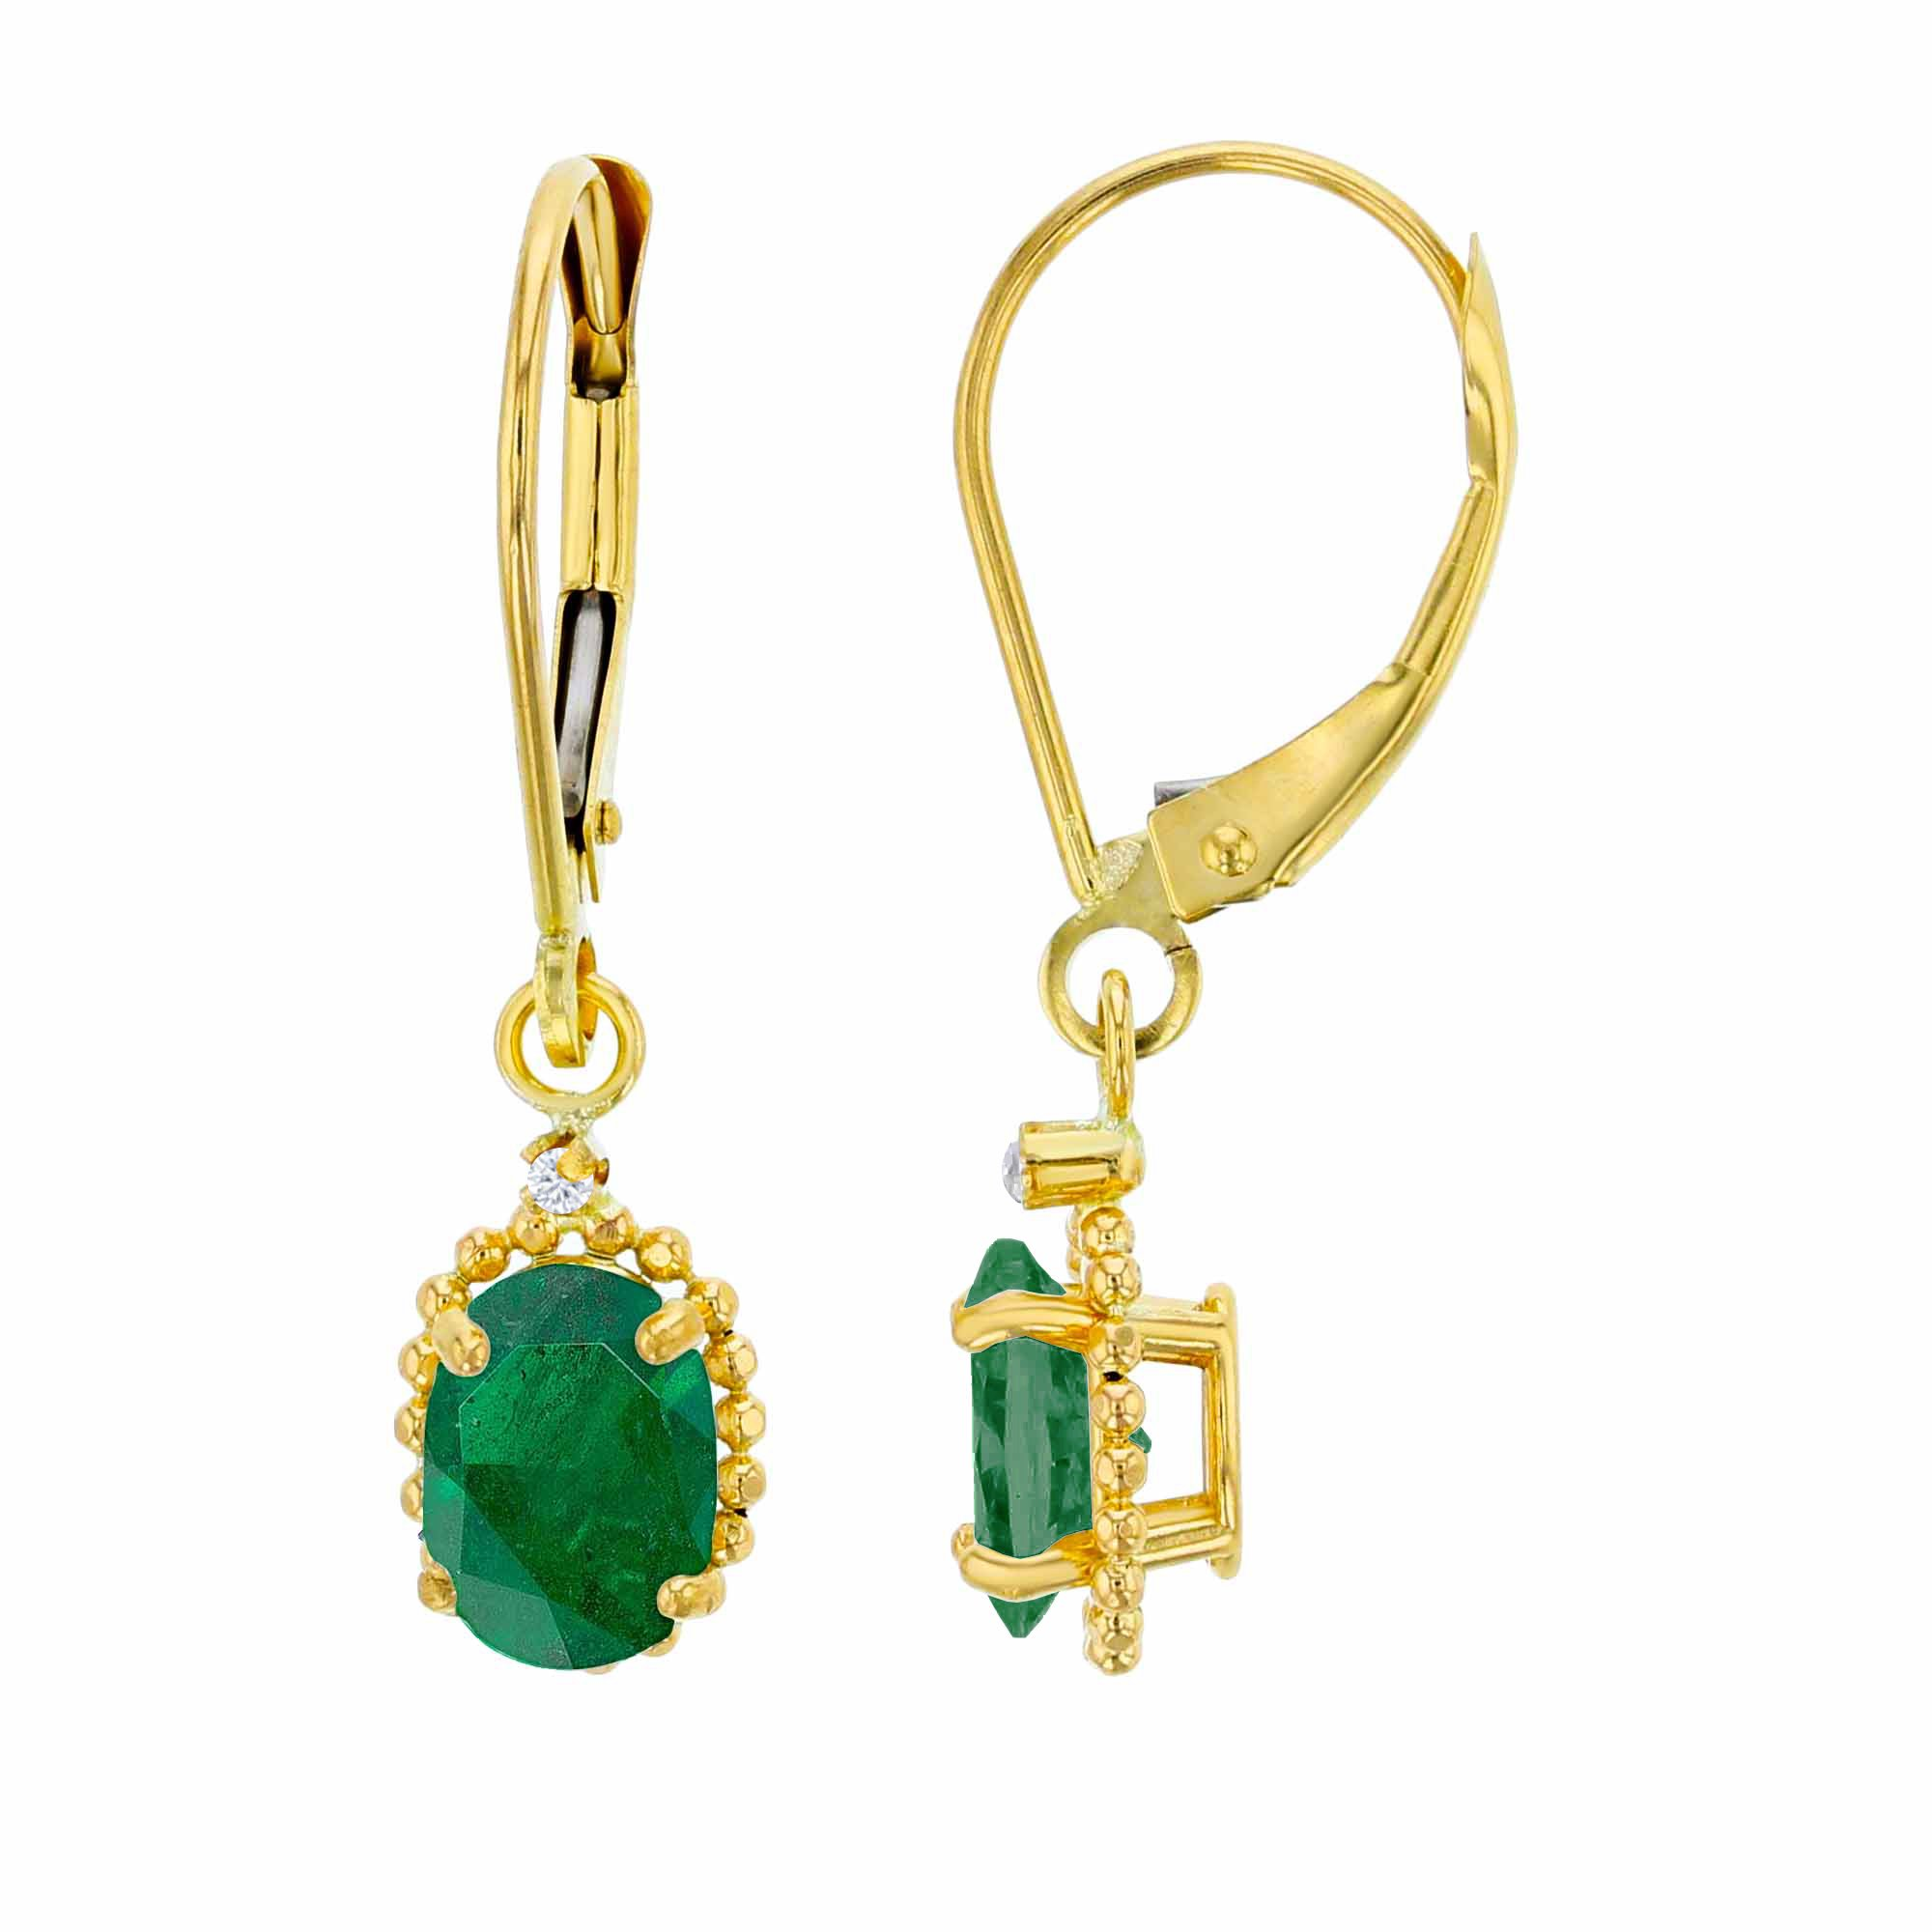 14K Yellow Gold 1.25mm Round White Topaz & 6x4mm Oval Emerald Bead Frame Drop Leverback Earring